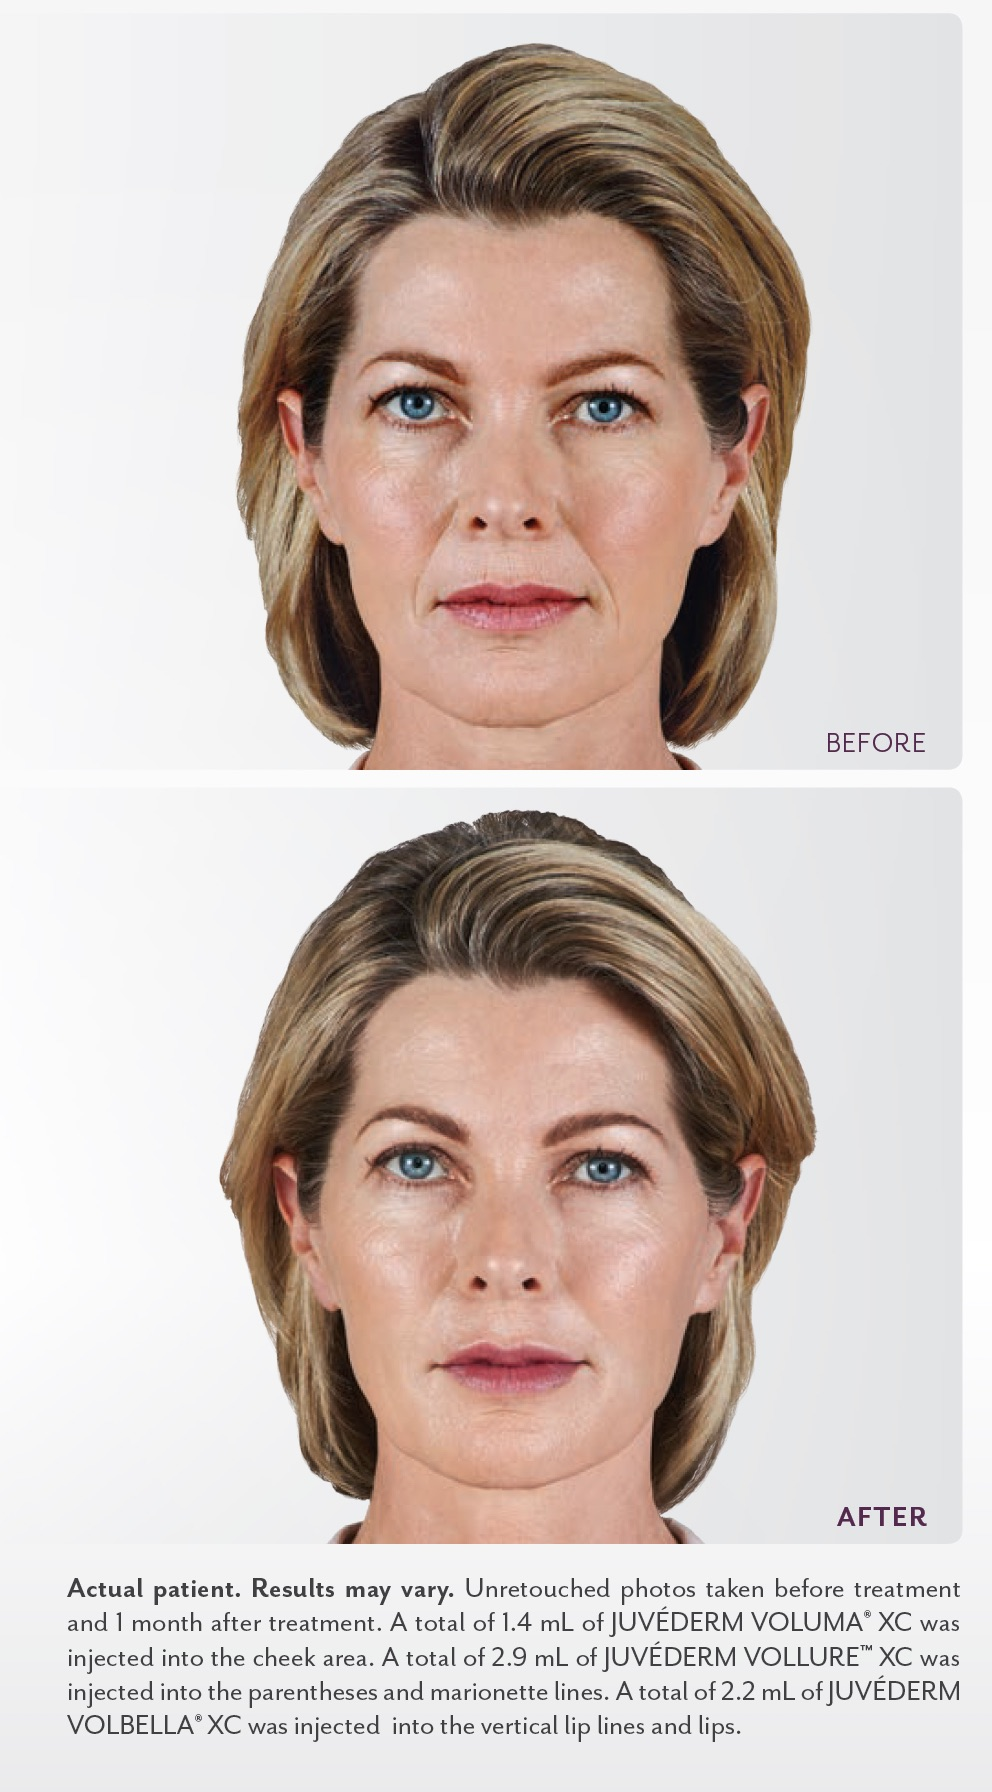 Juvederm Collection - Before and After - Concierge Aesthetics - Irvine